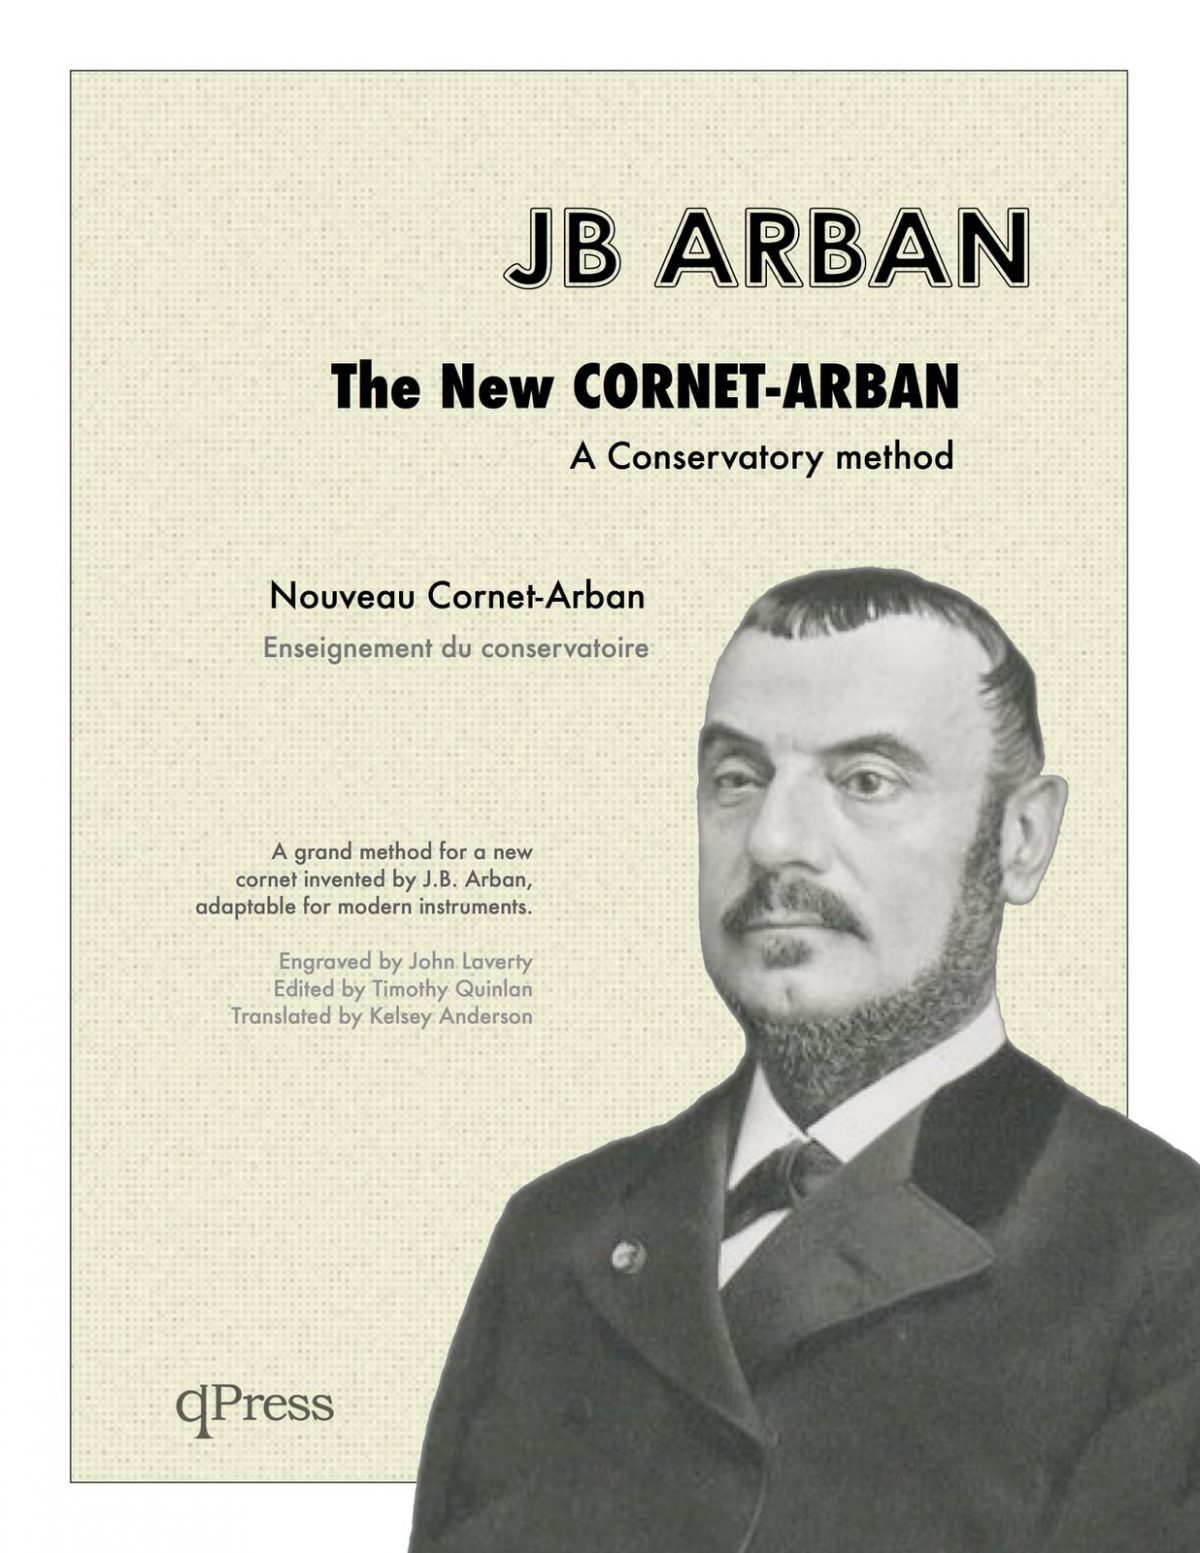 Arban, The New Cornet-Arban Conservatory Method-p01